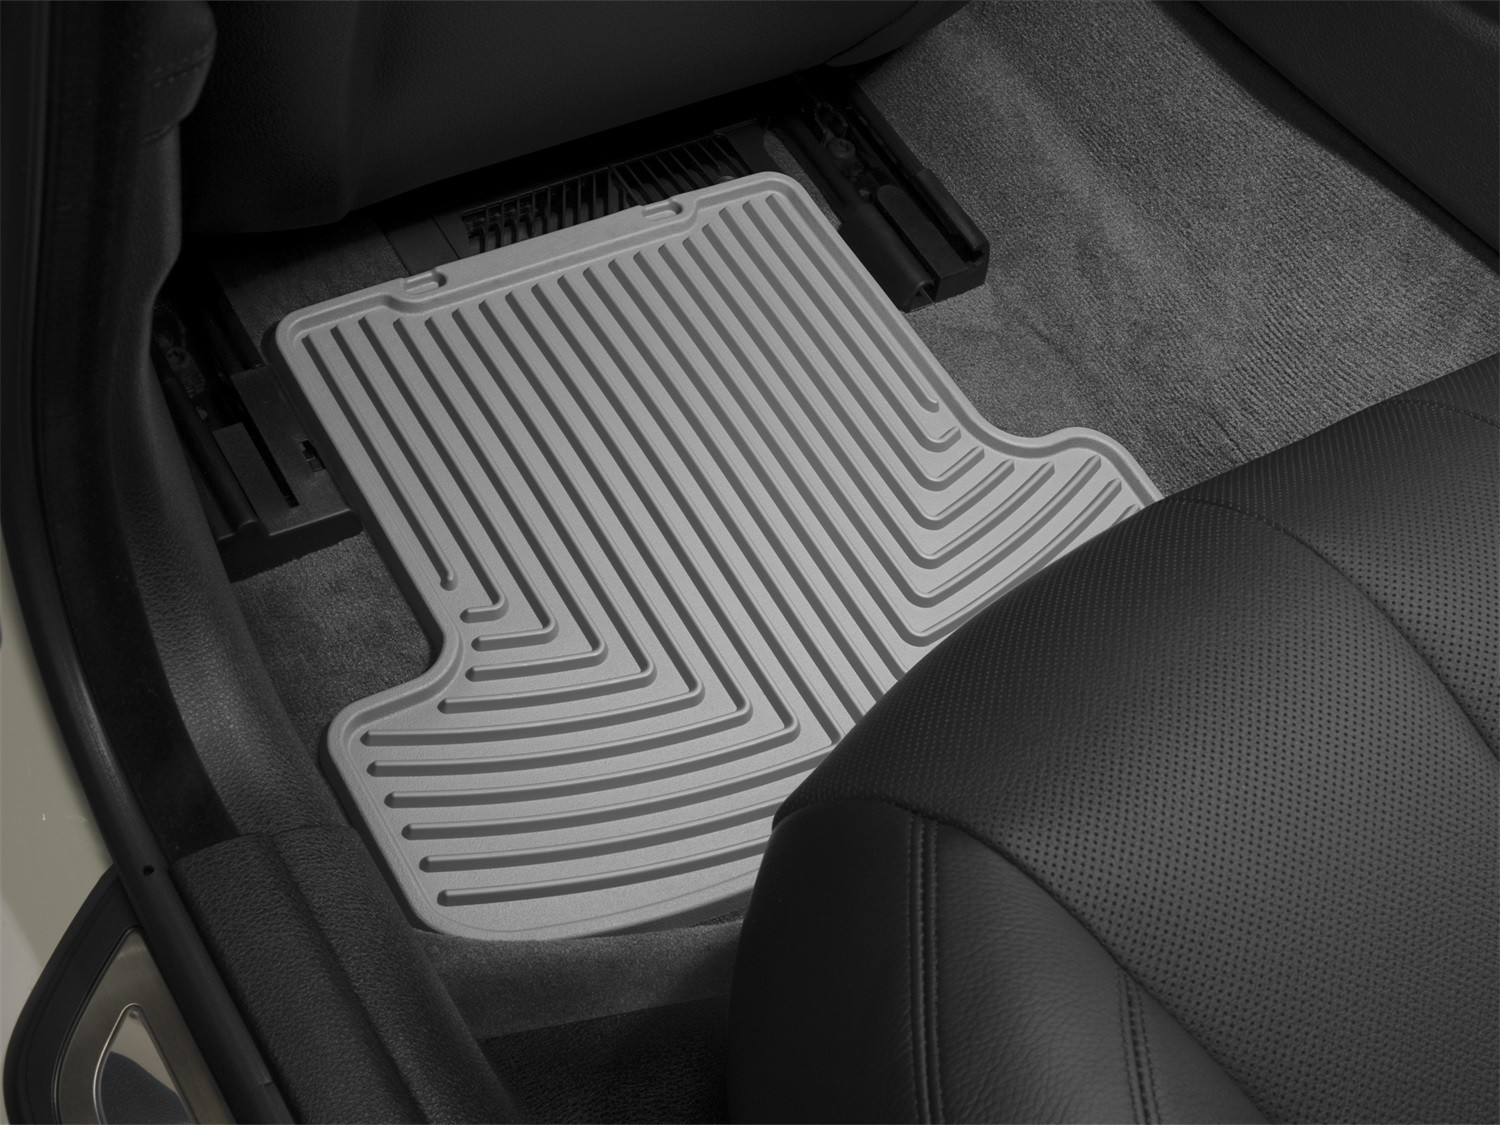 Rubber floor mats for jaguar xf - Rubber Floor Mats For Jaguar Xf 46